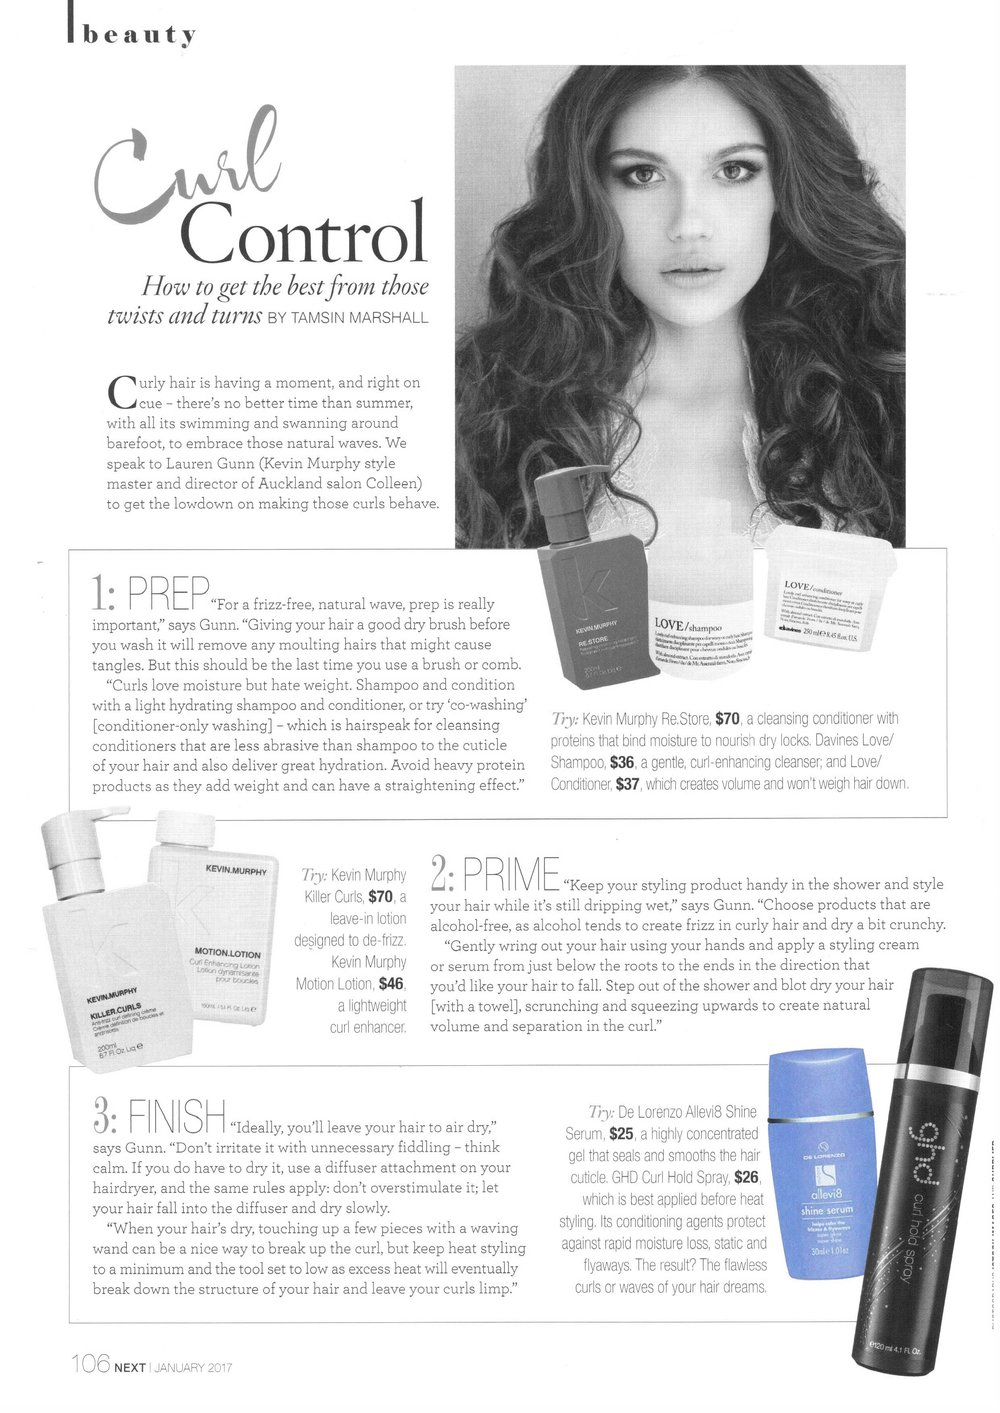 Next Jan 17 De Lorenzo Allevi8 Shine Serum page 106.jpg